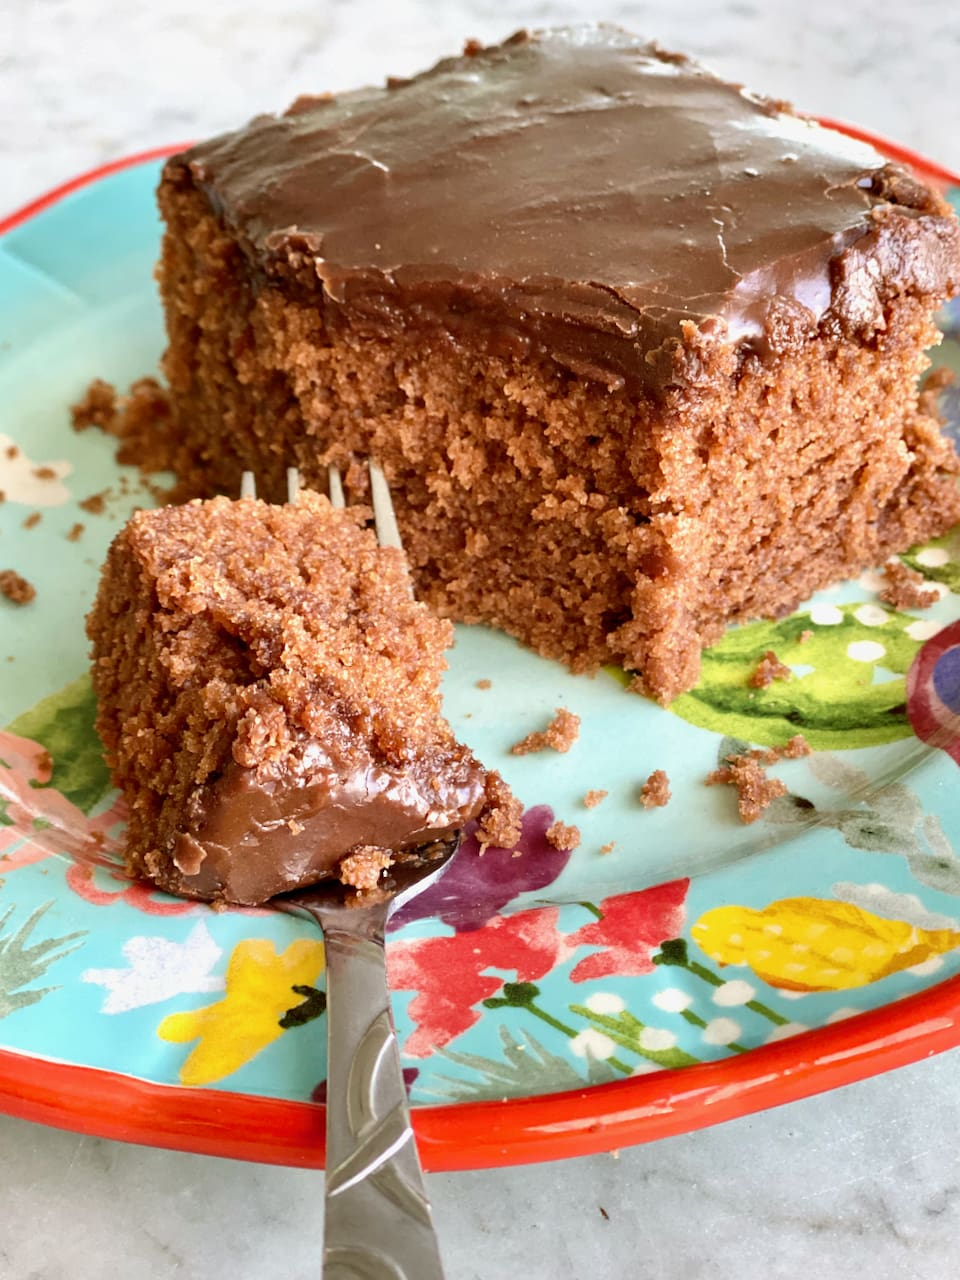 slice of chocolate cake on a blue plate with a bite on a fork